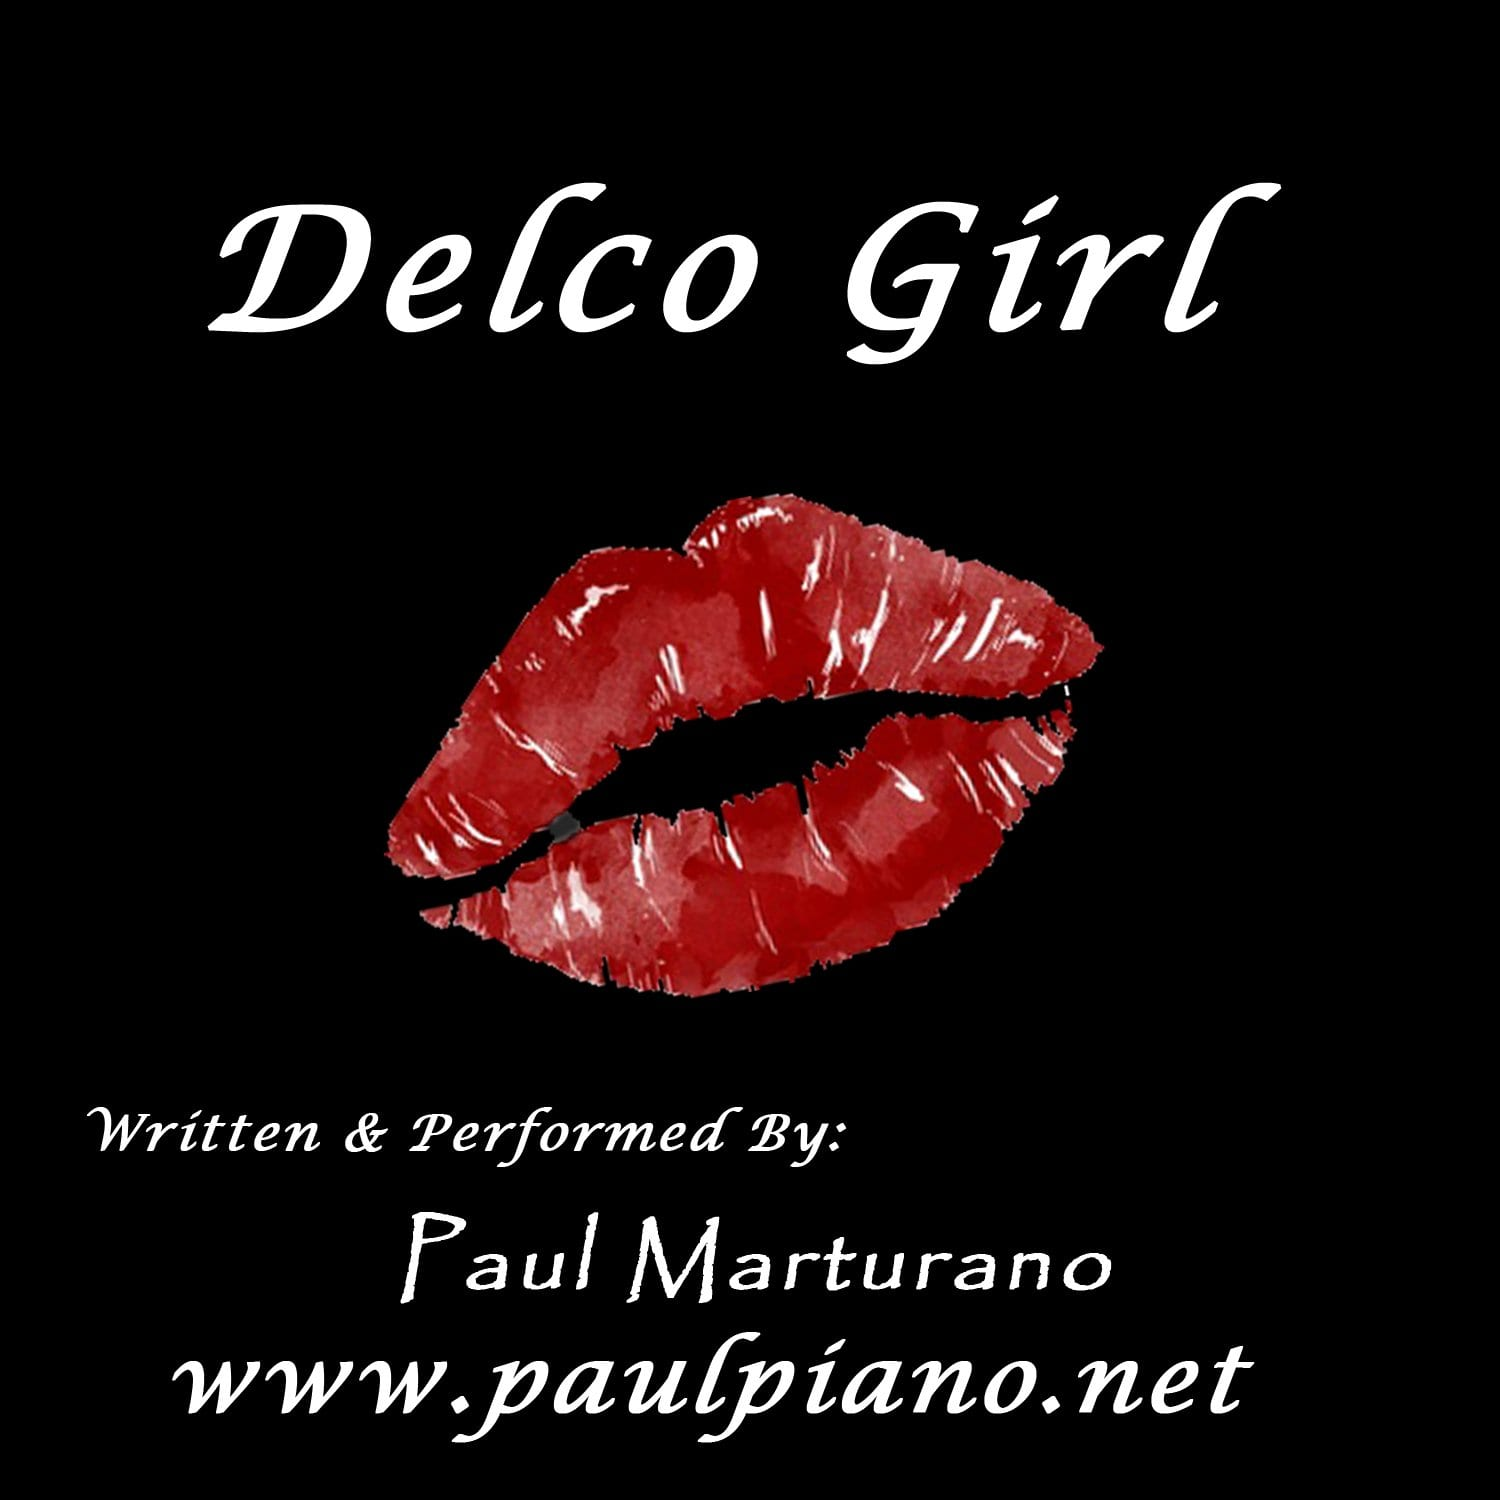 DelcoGirlCDCover_1024x1024@2x